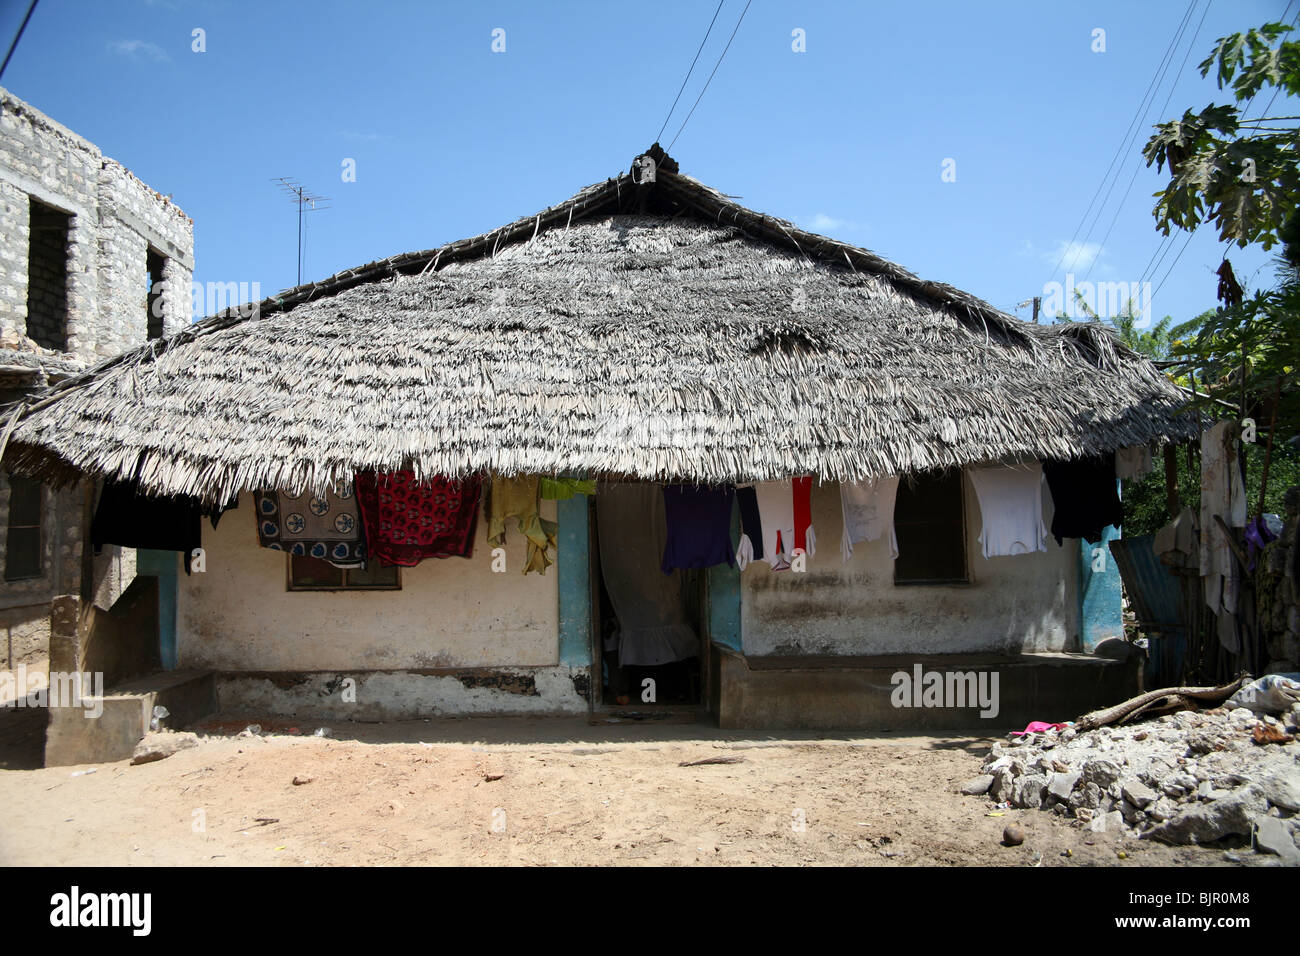 Traditional Swahili home on the Island of Lamu - Stock Image